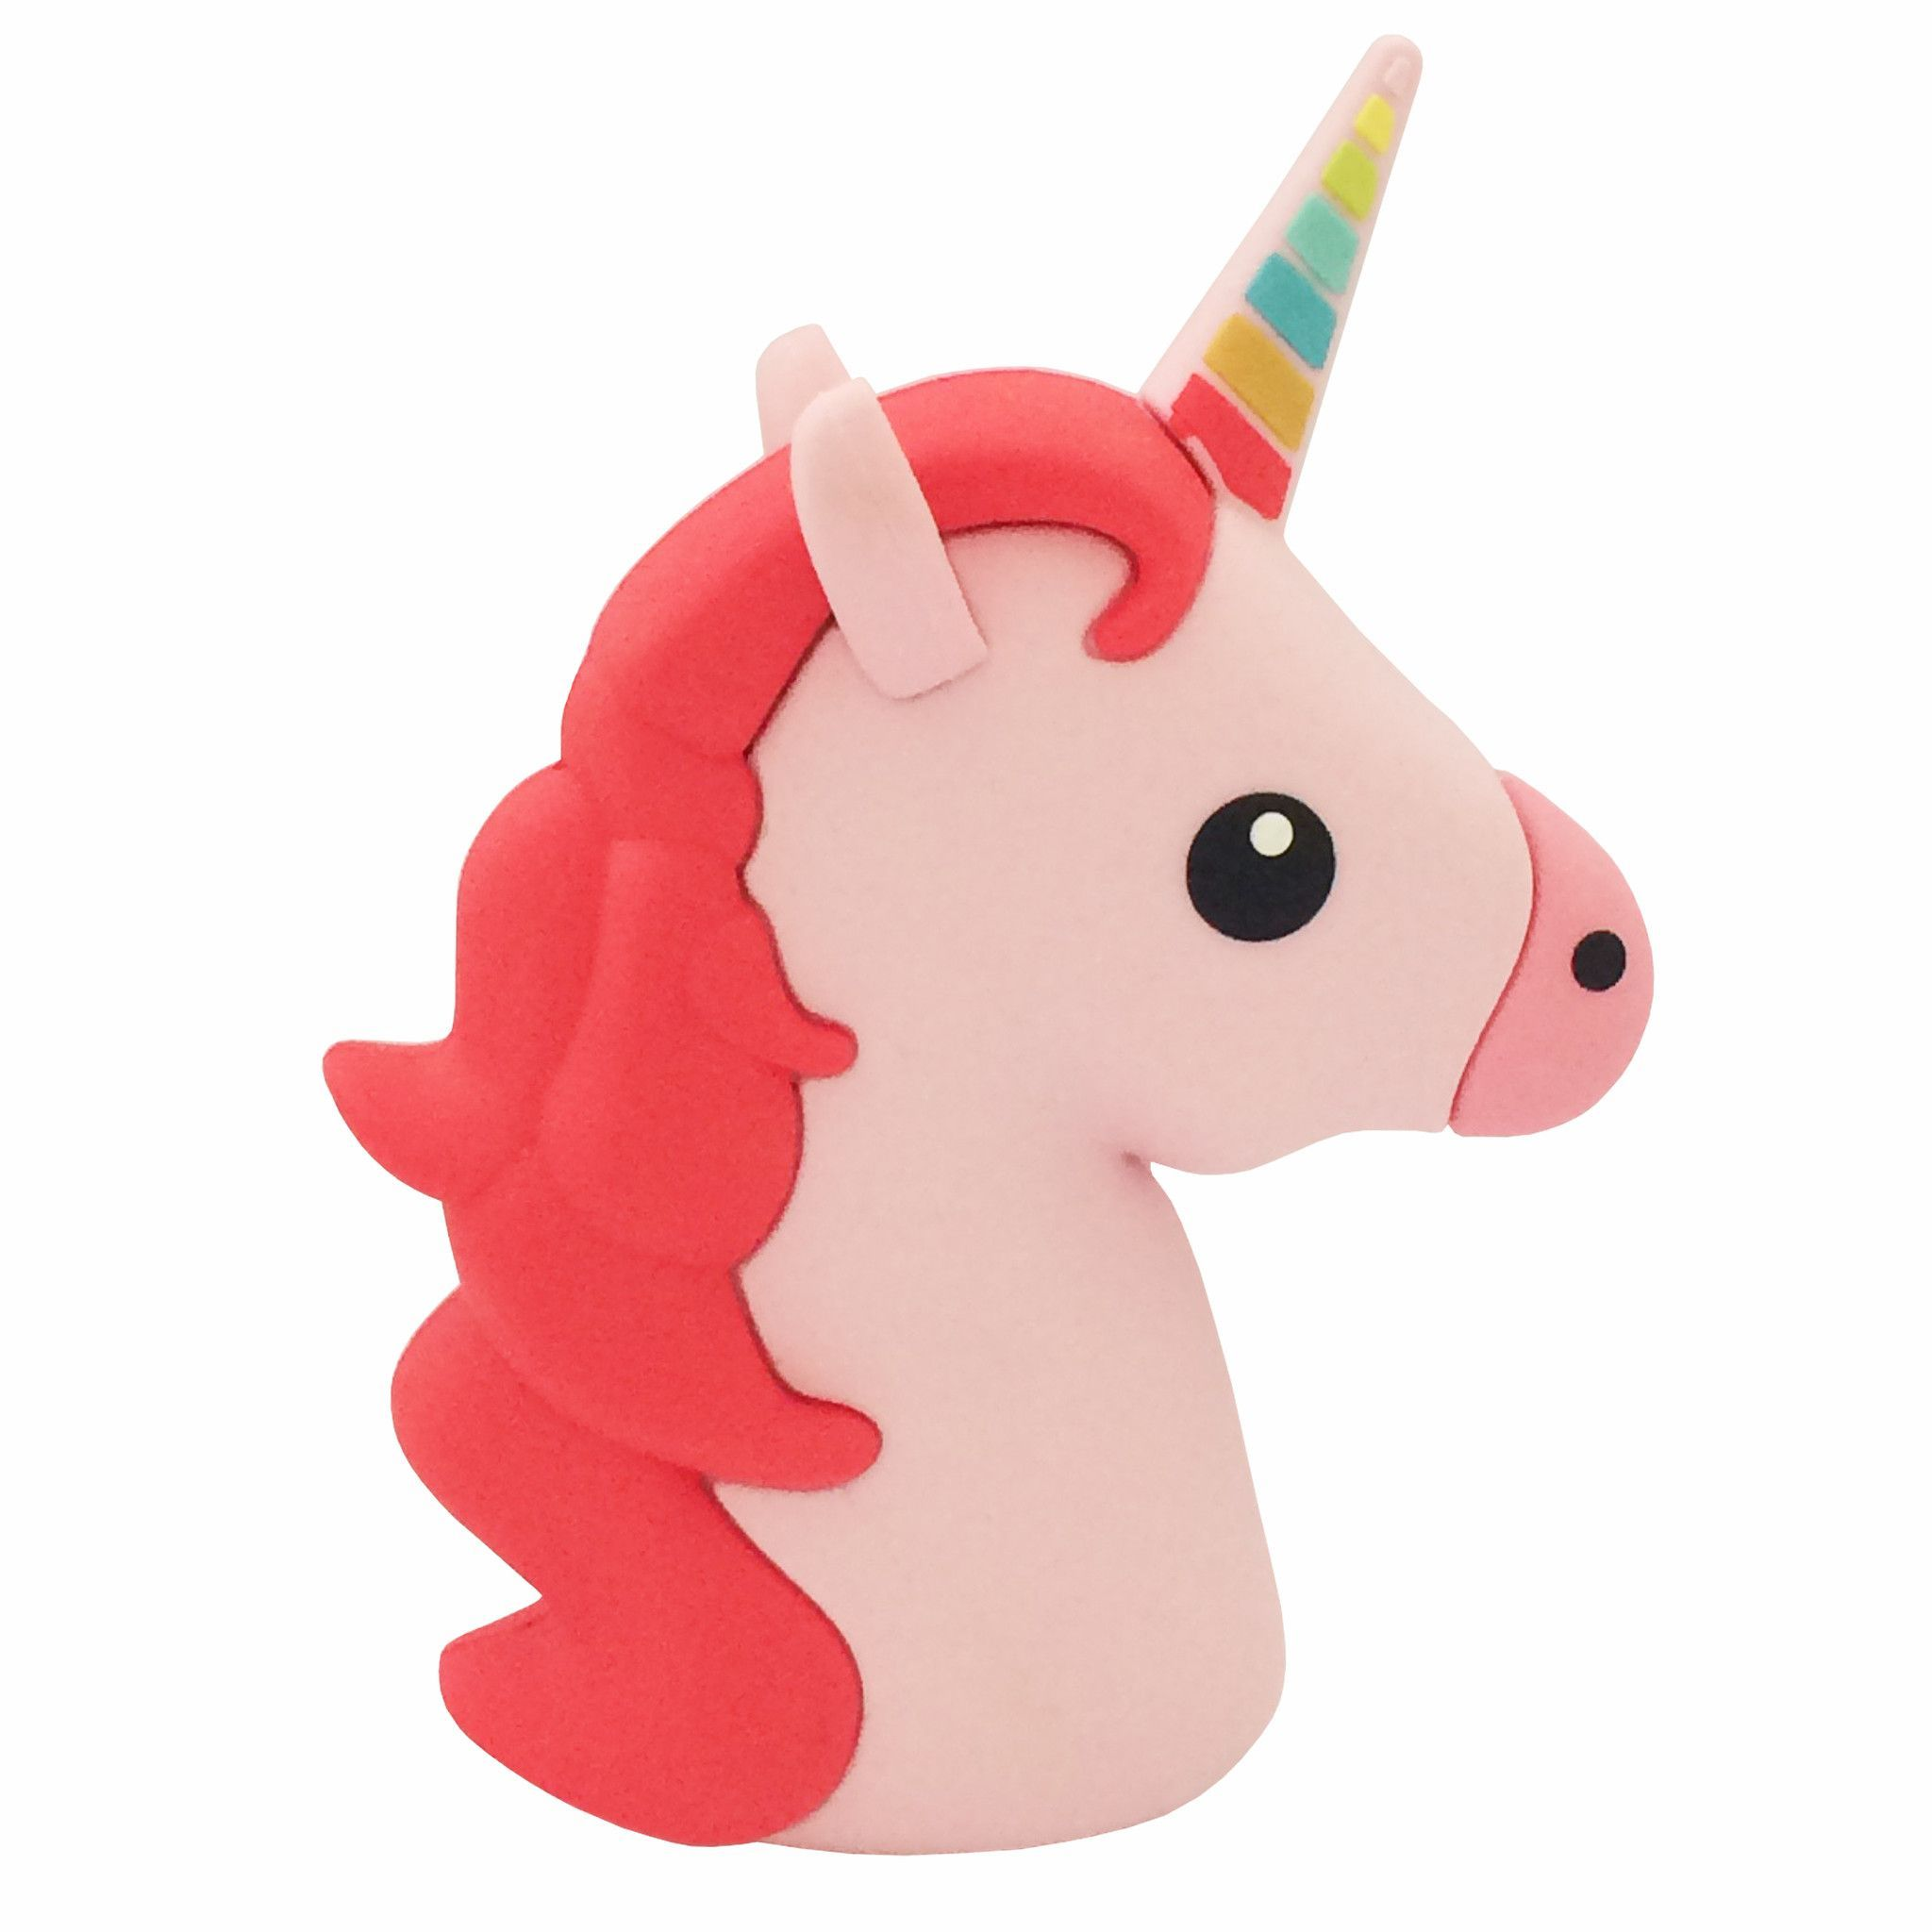 Majestic Unicorn Emoji Powerbank charger for iOS & Android ...